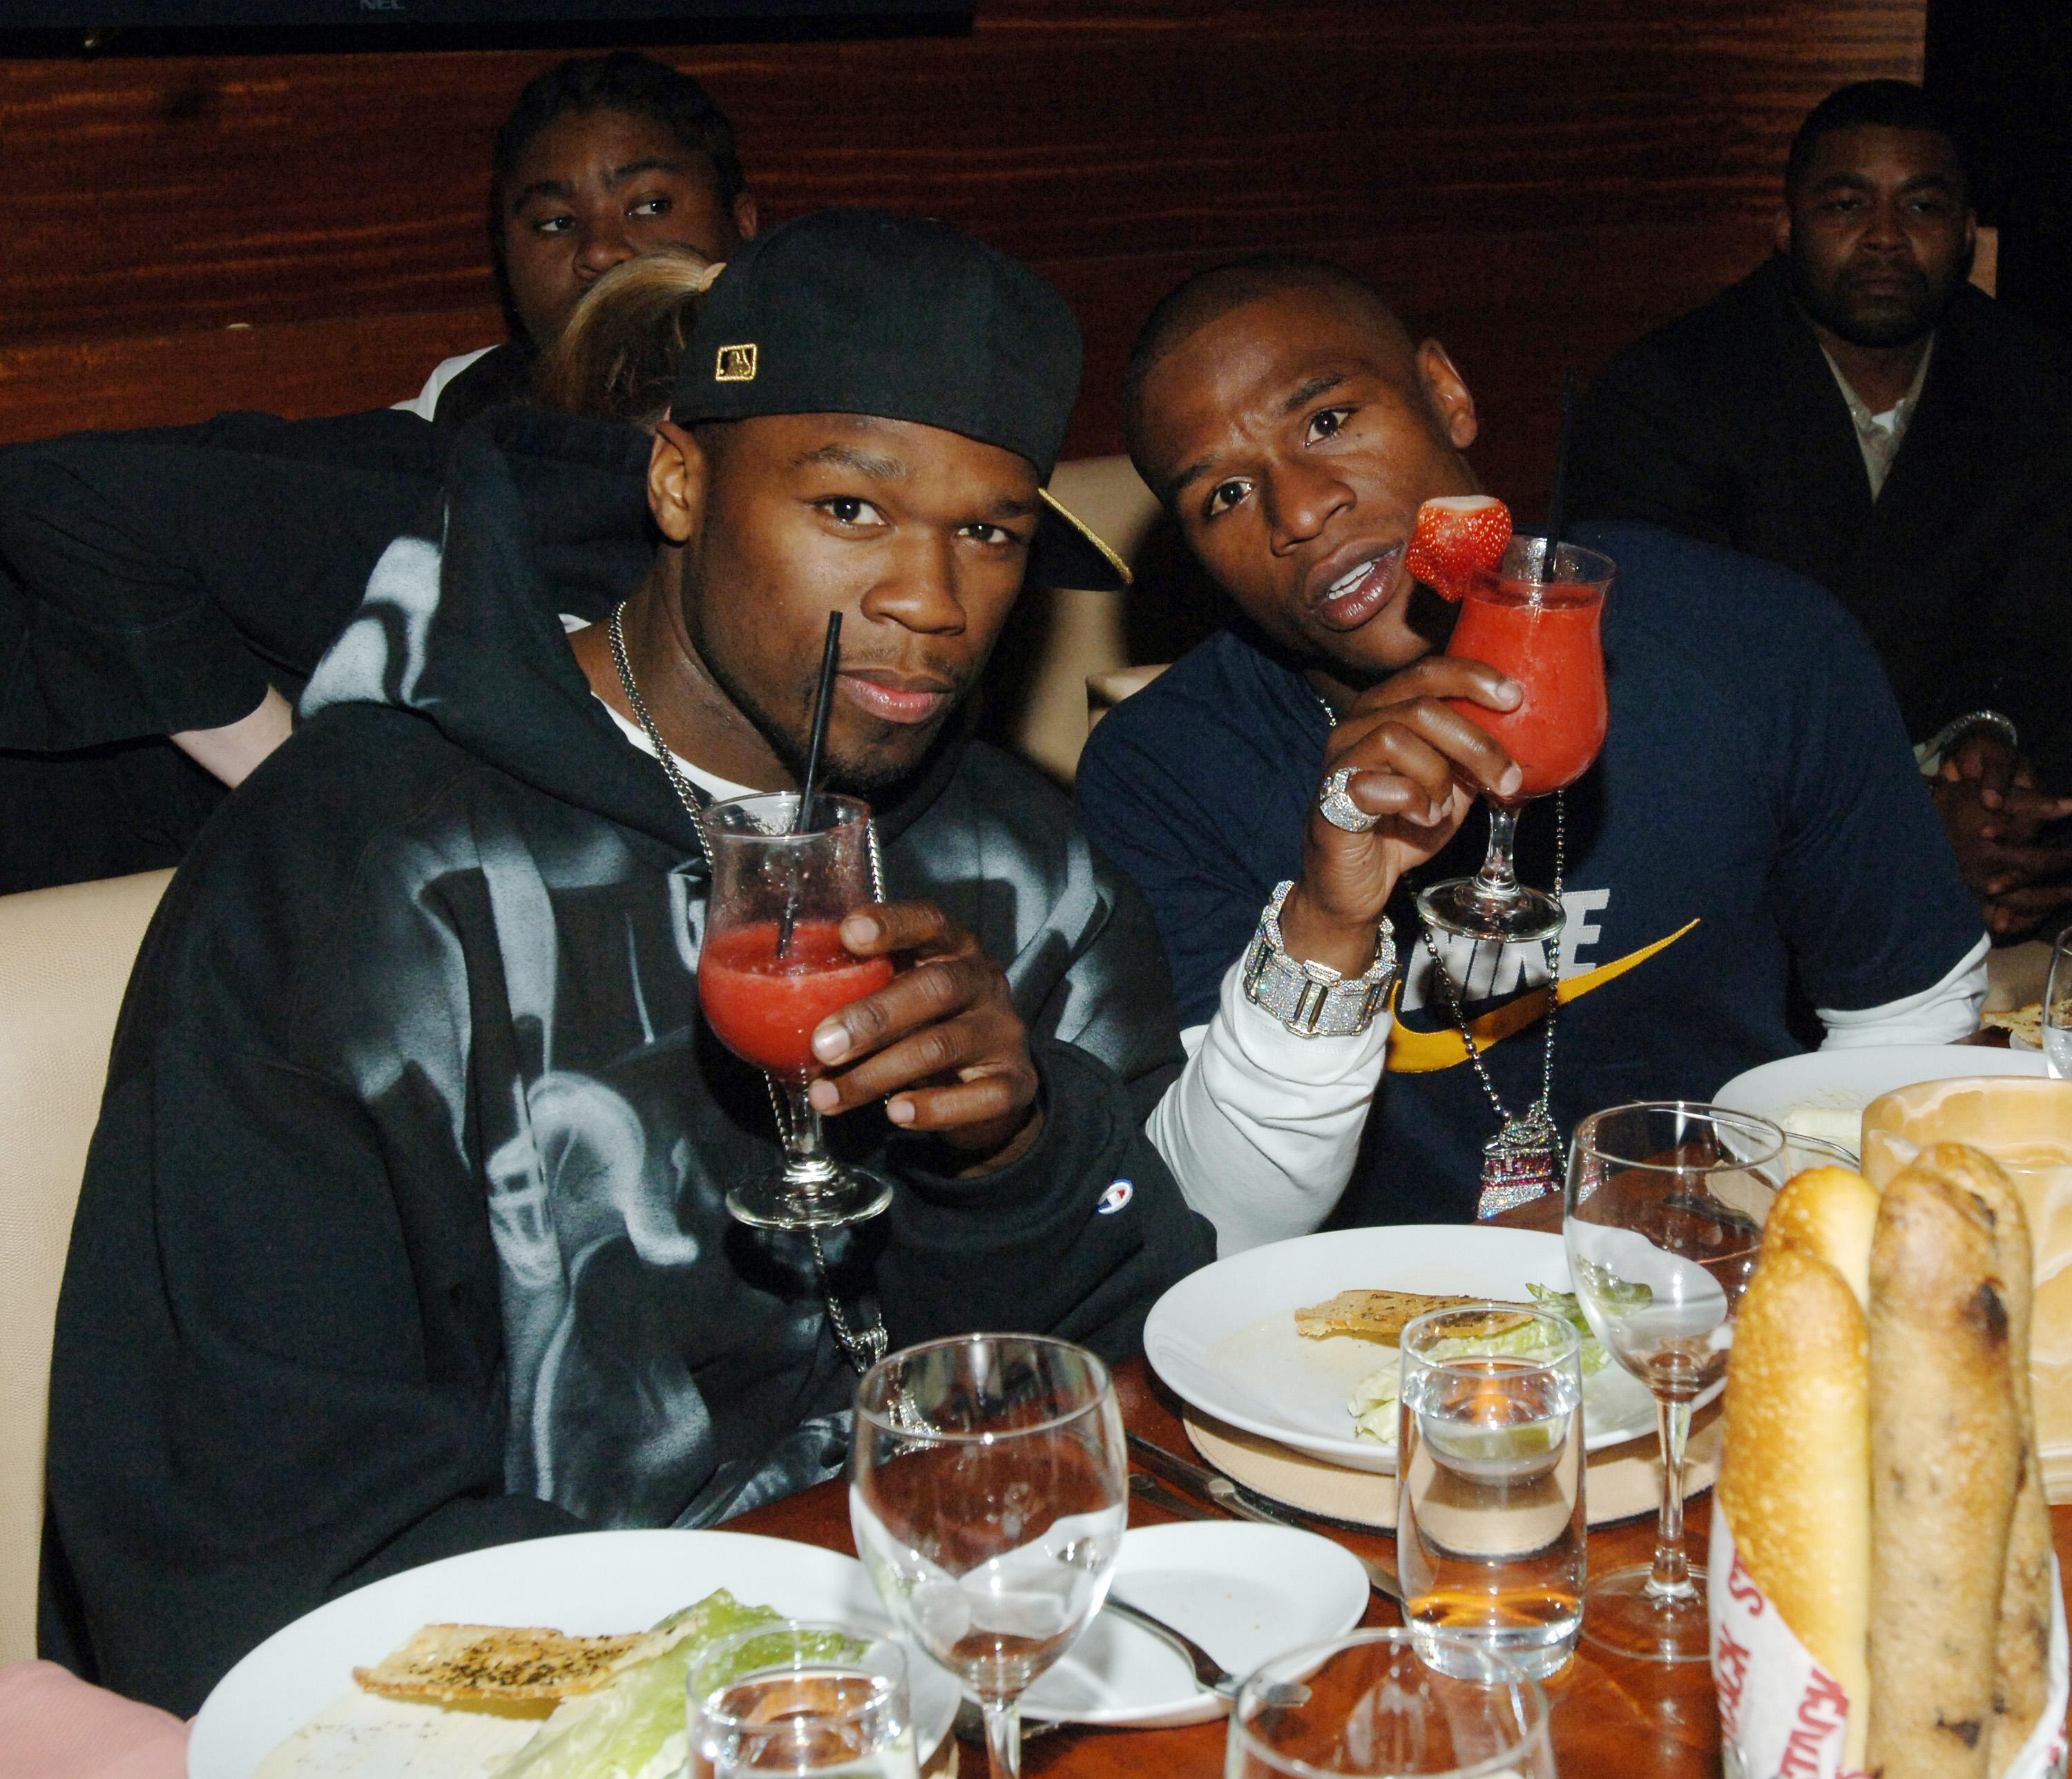 Floyd Mayweather Jr.'s 30th Birthday Diner at STACK Restaurant at The Mirage Hotel and Casino Resort